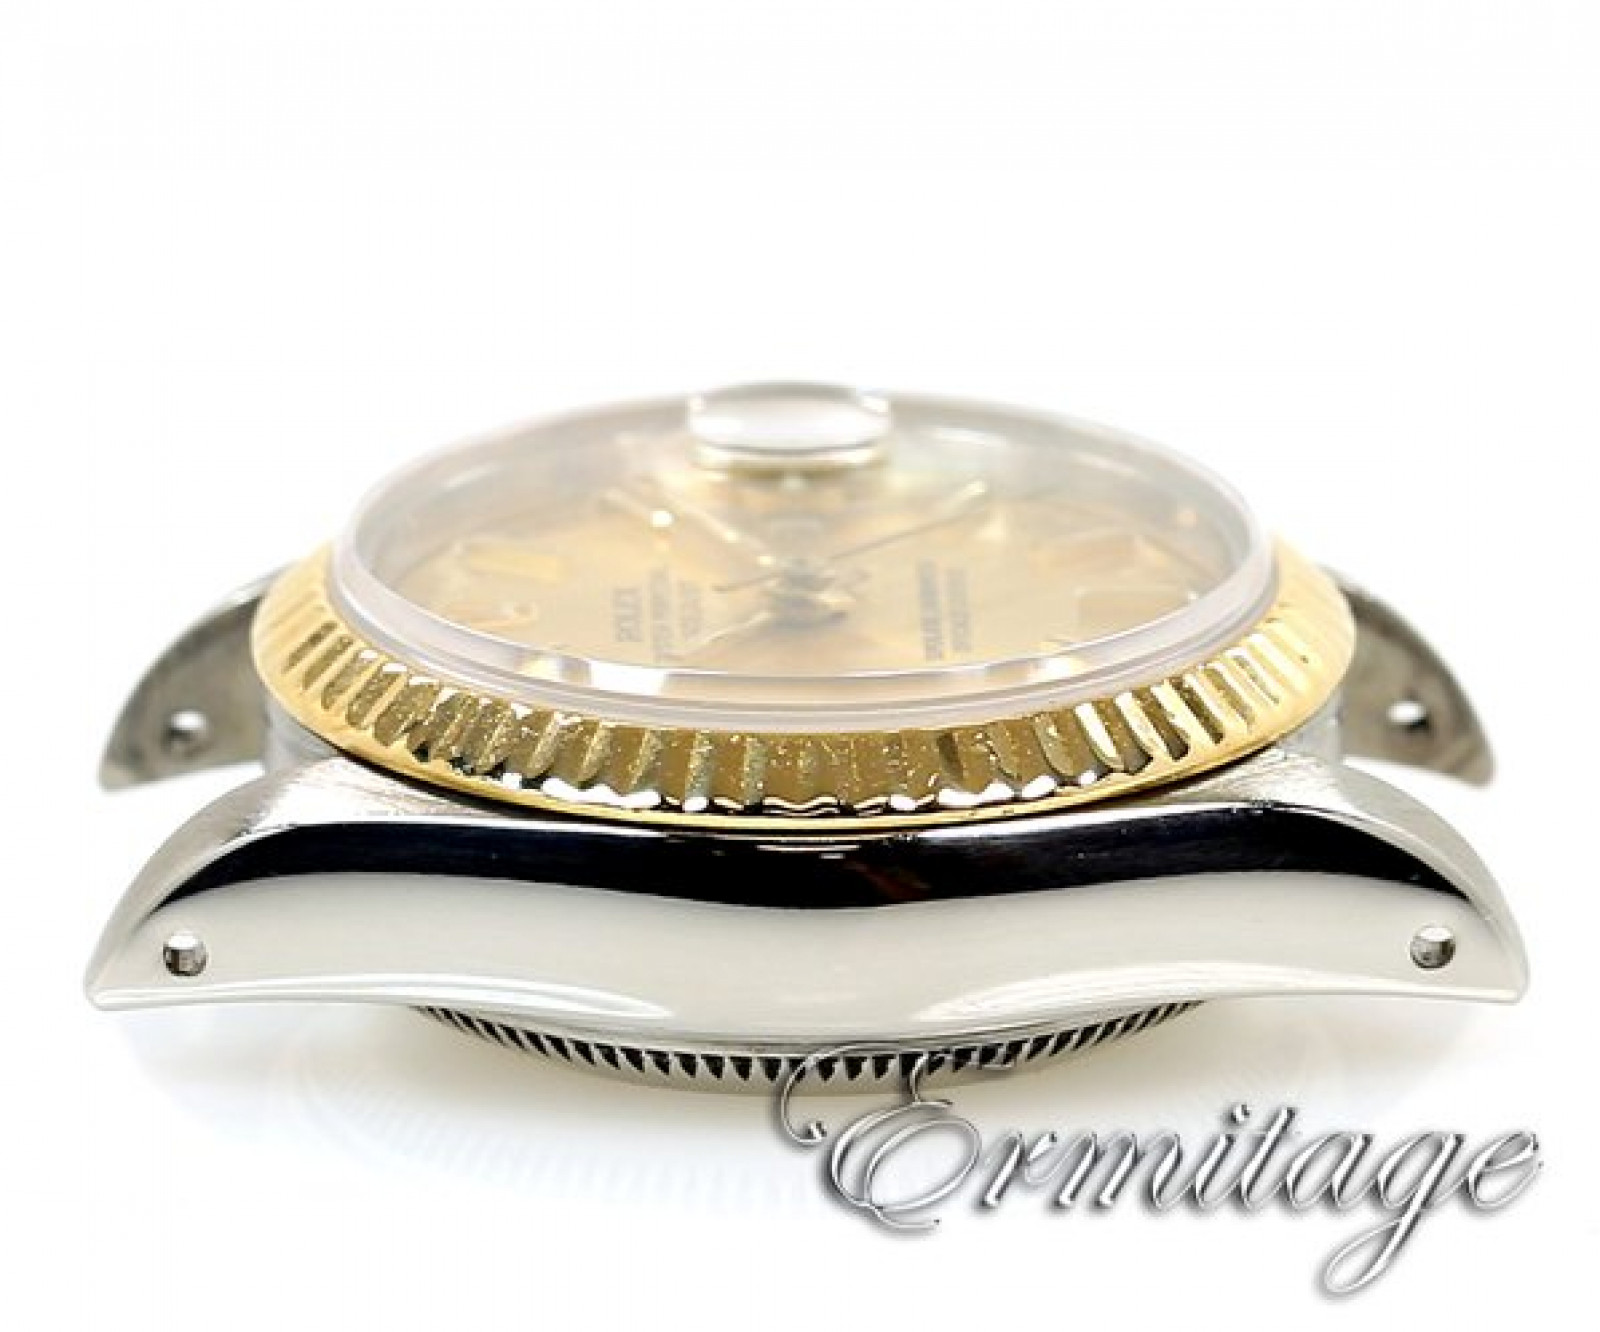 Pre-Owned Gold & Steel Rolex Datejust 69173 Year 1983